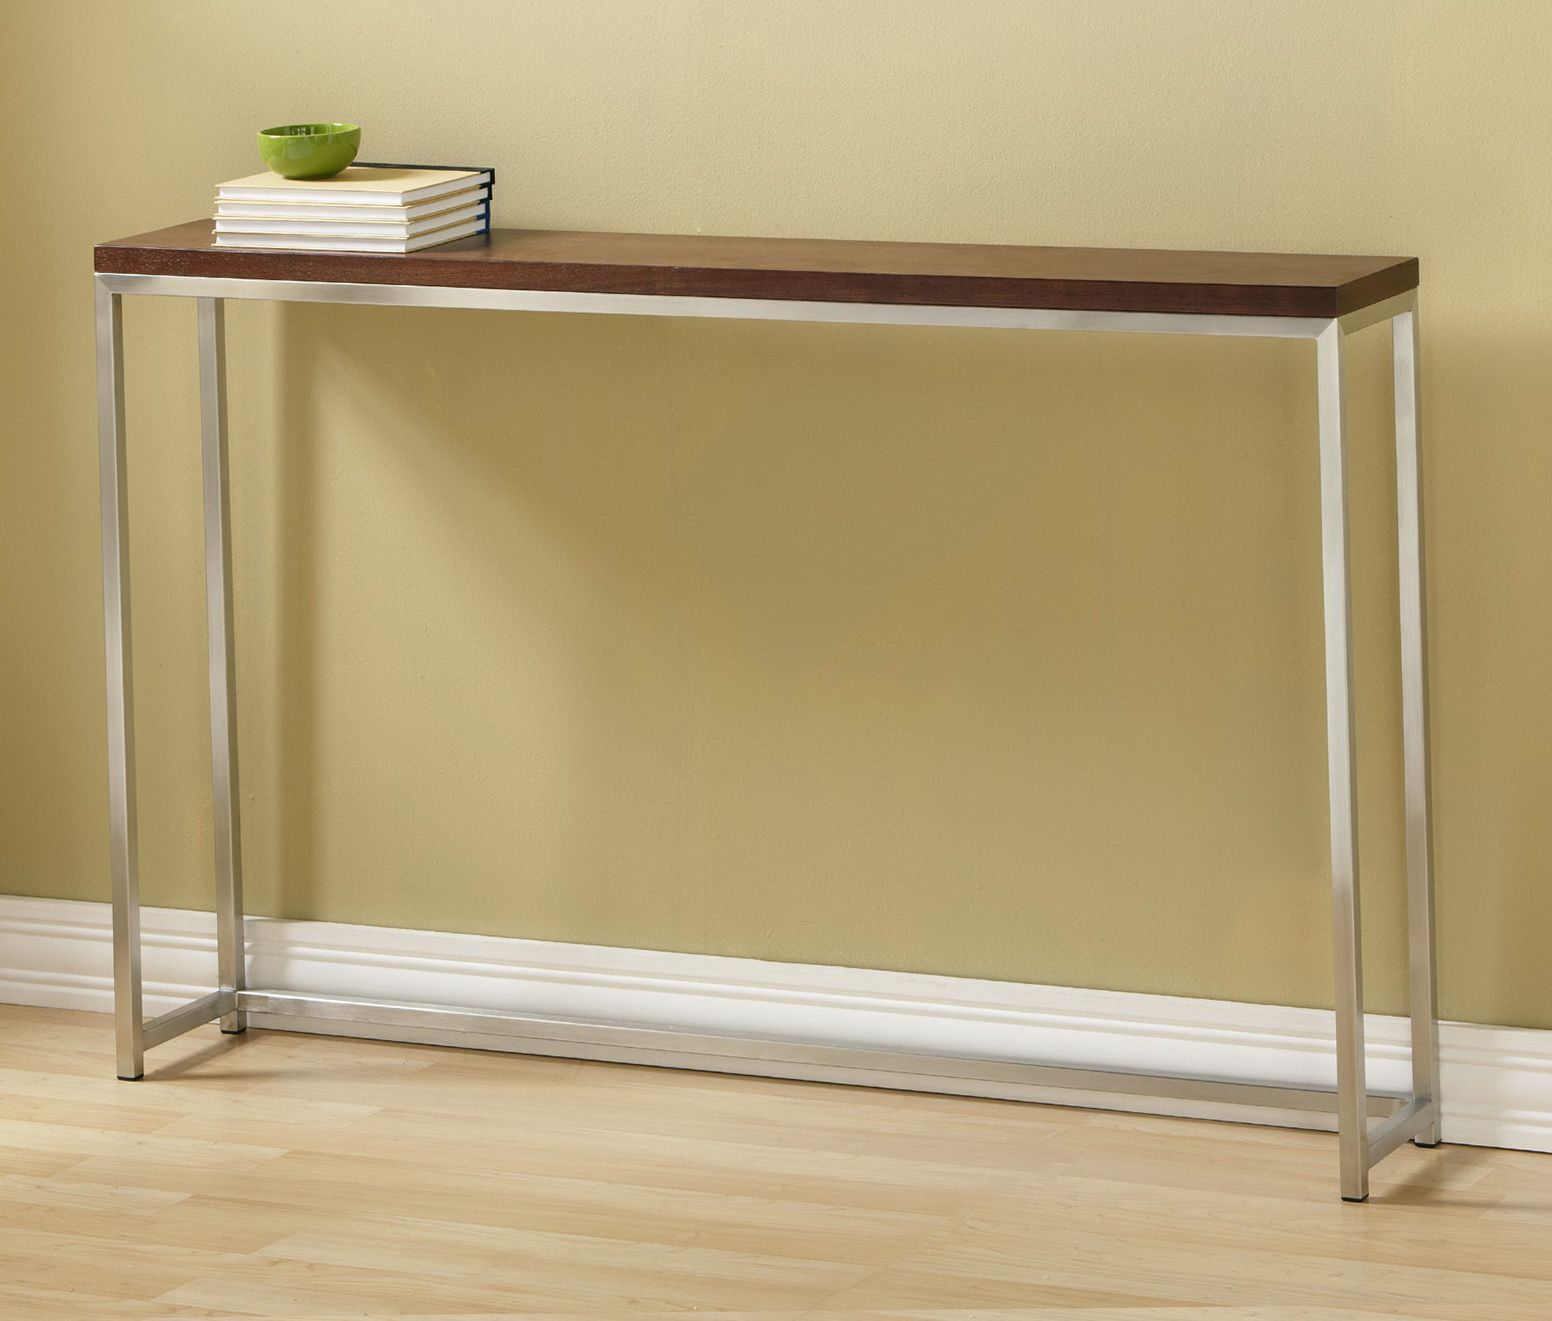 Us Furniture And Home Furnishings Console Table Hallway Ikea